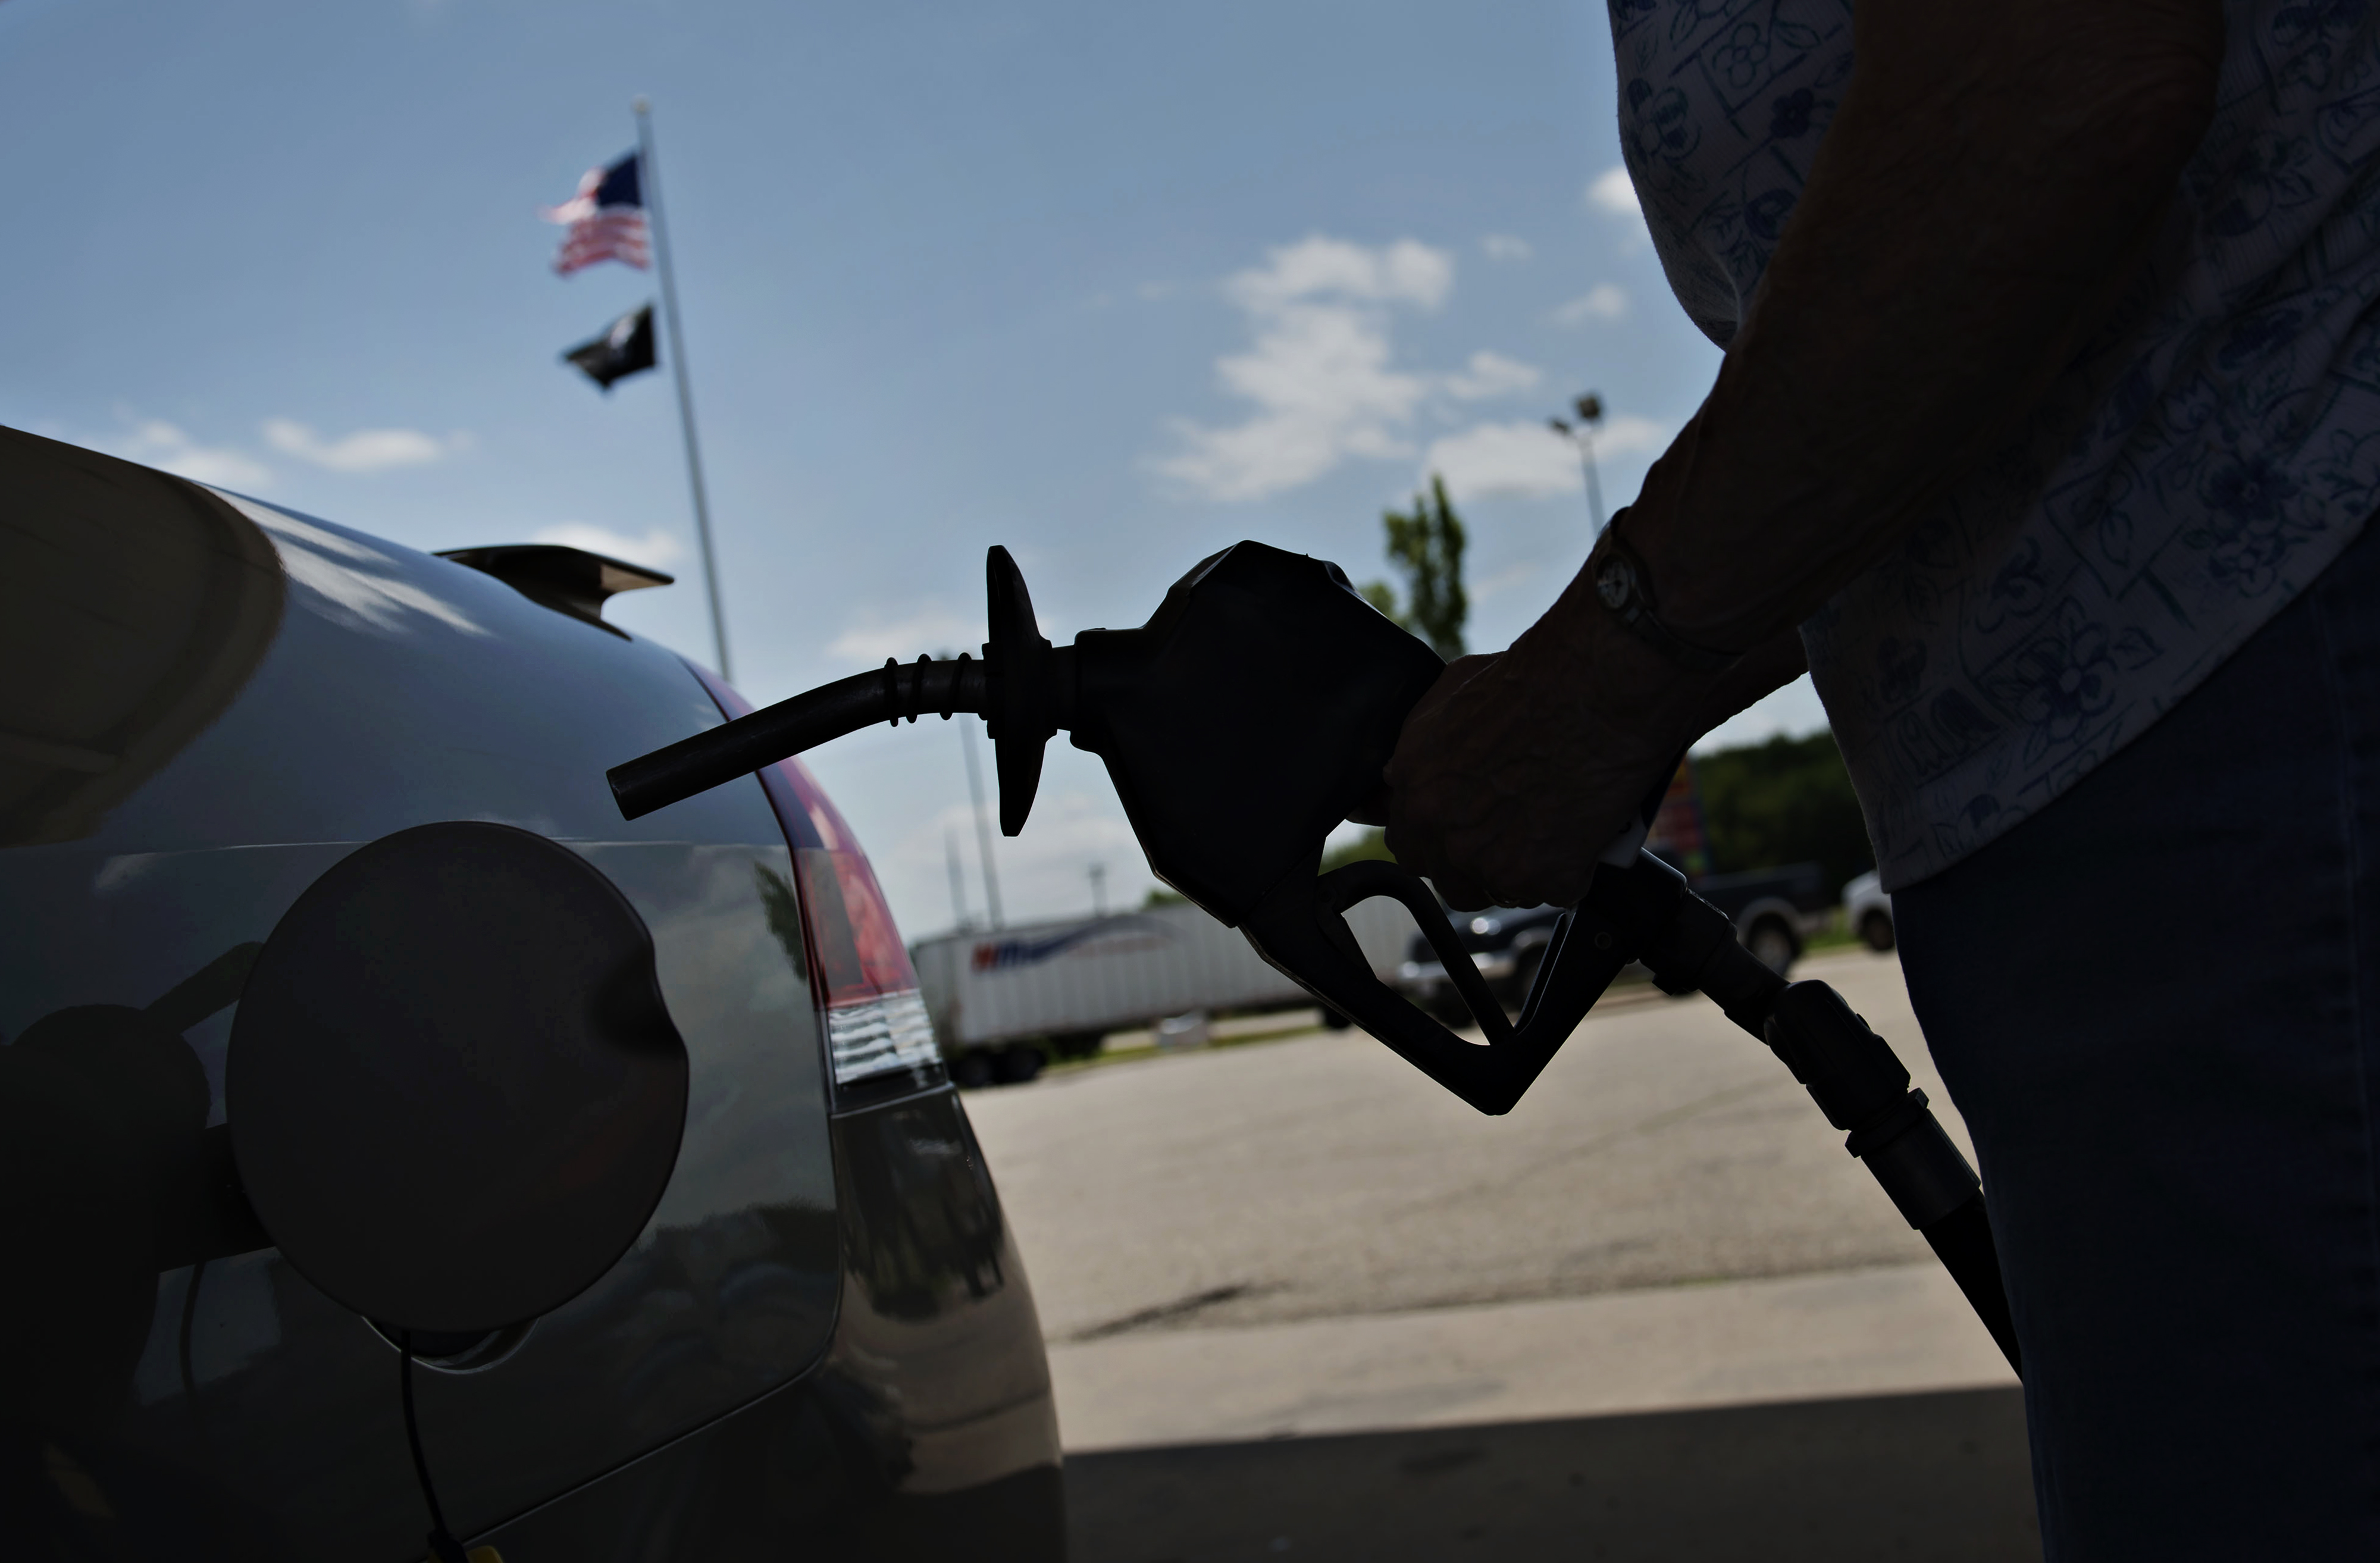 A customer prepares to fuel her vehicle at a Road Ranger gas station in Princeton, Illinois, on June 17, 2014.